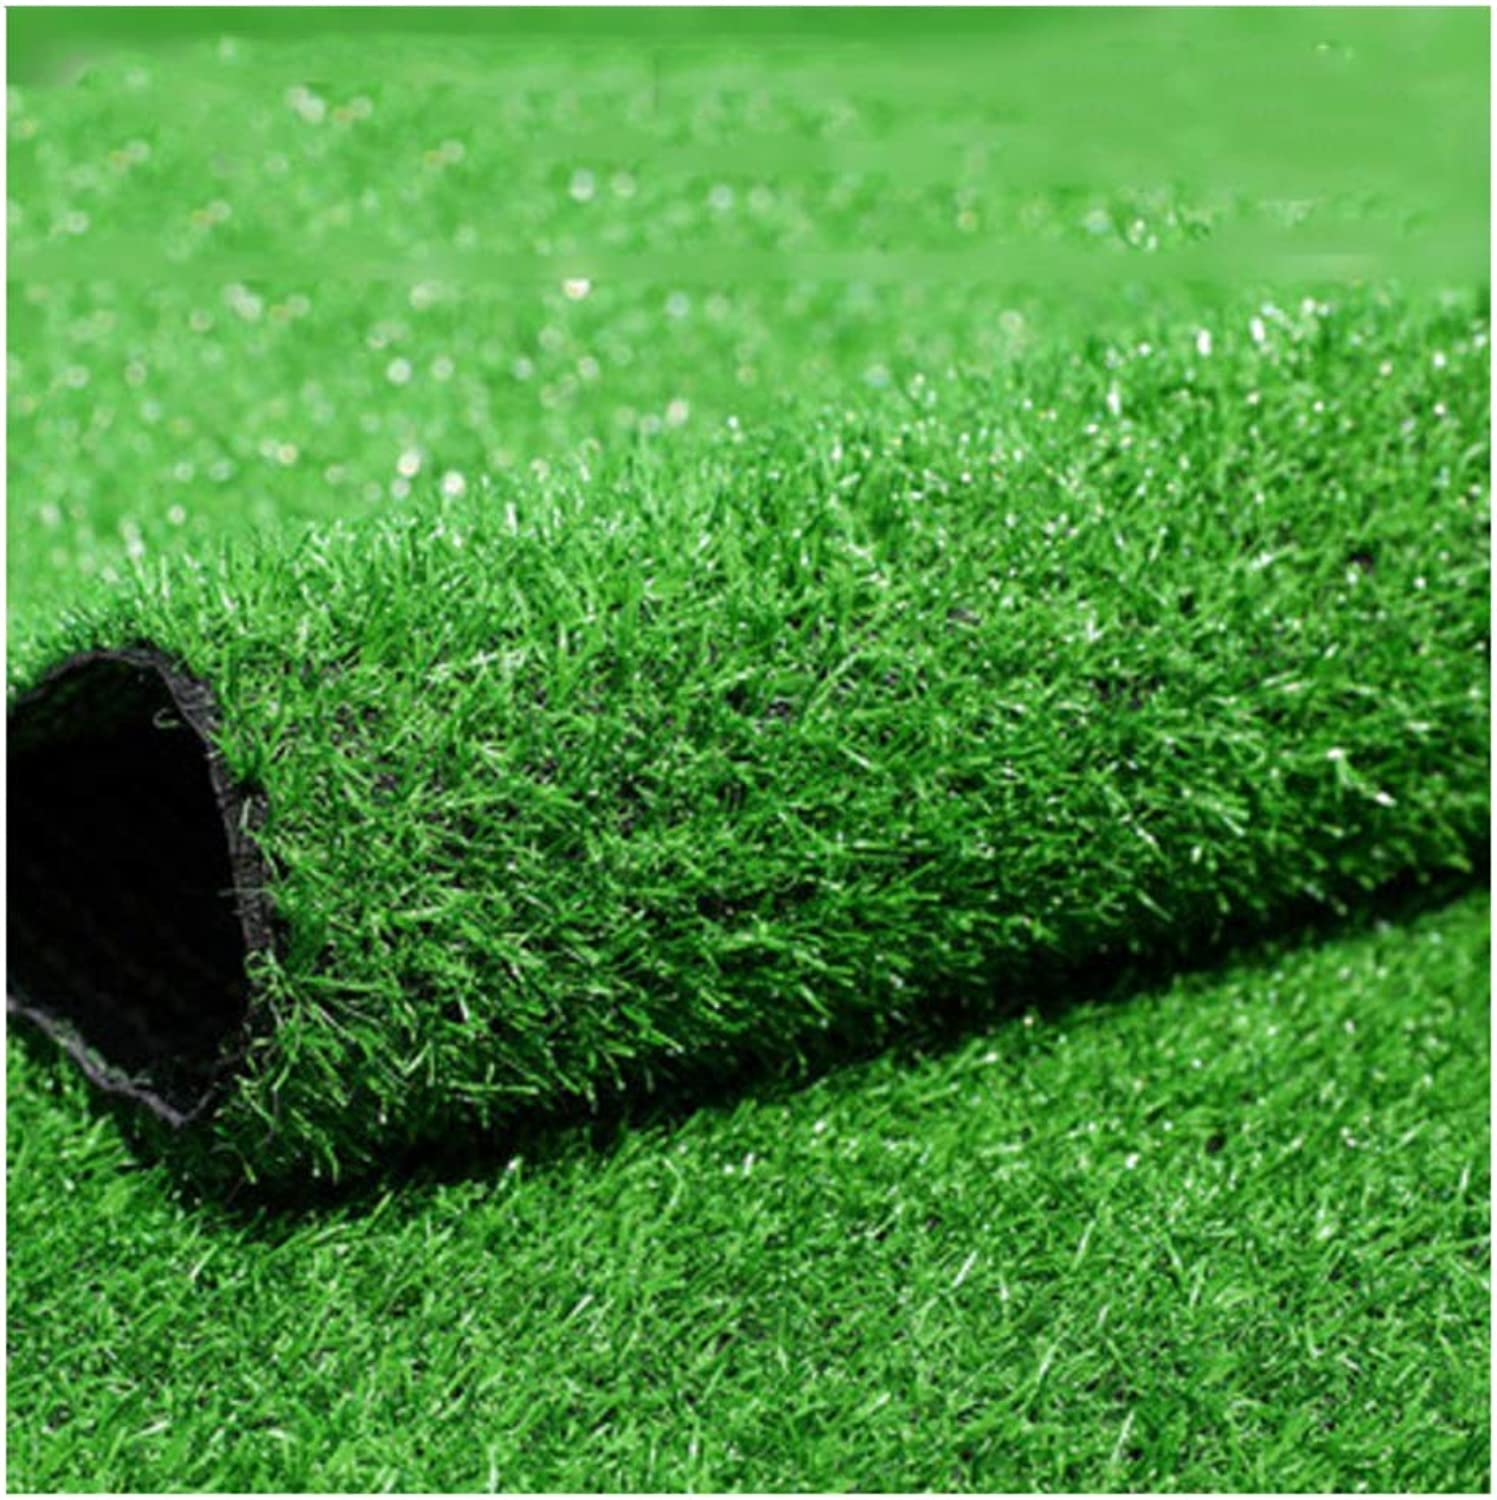 Simulation Indoor Outdoor Green Artificial Grass Carpet 20mm Pile High Synthetic Lawn with Drainage Hole Garden Fake Turf (Size   2x8m)